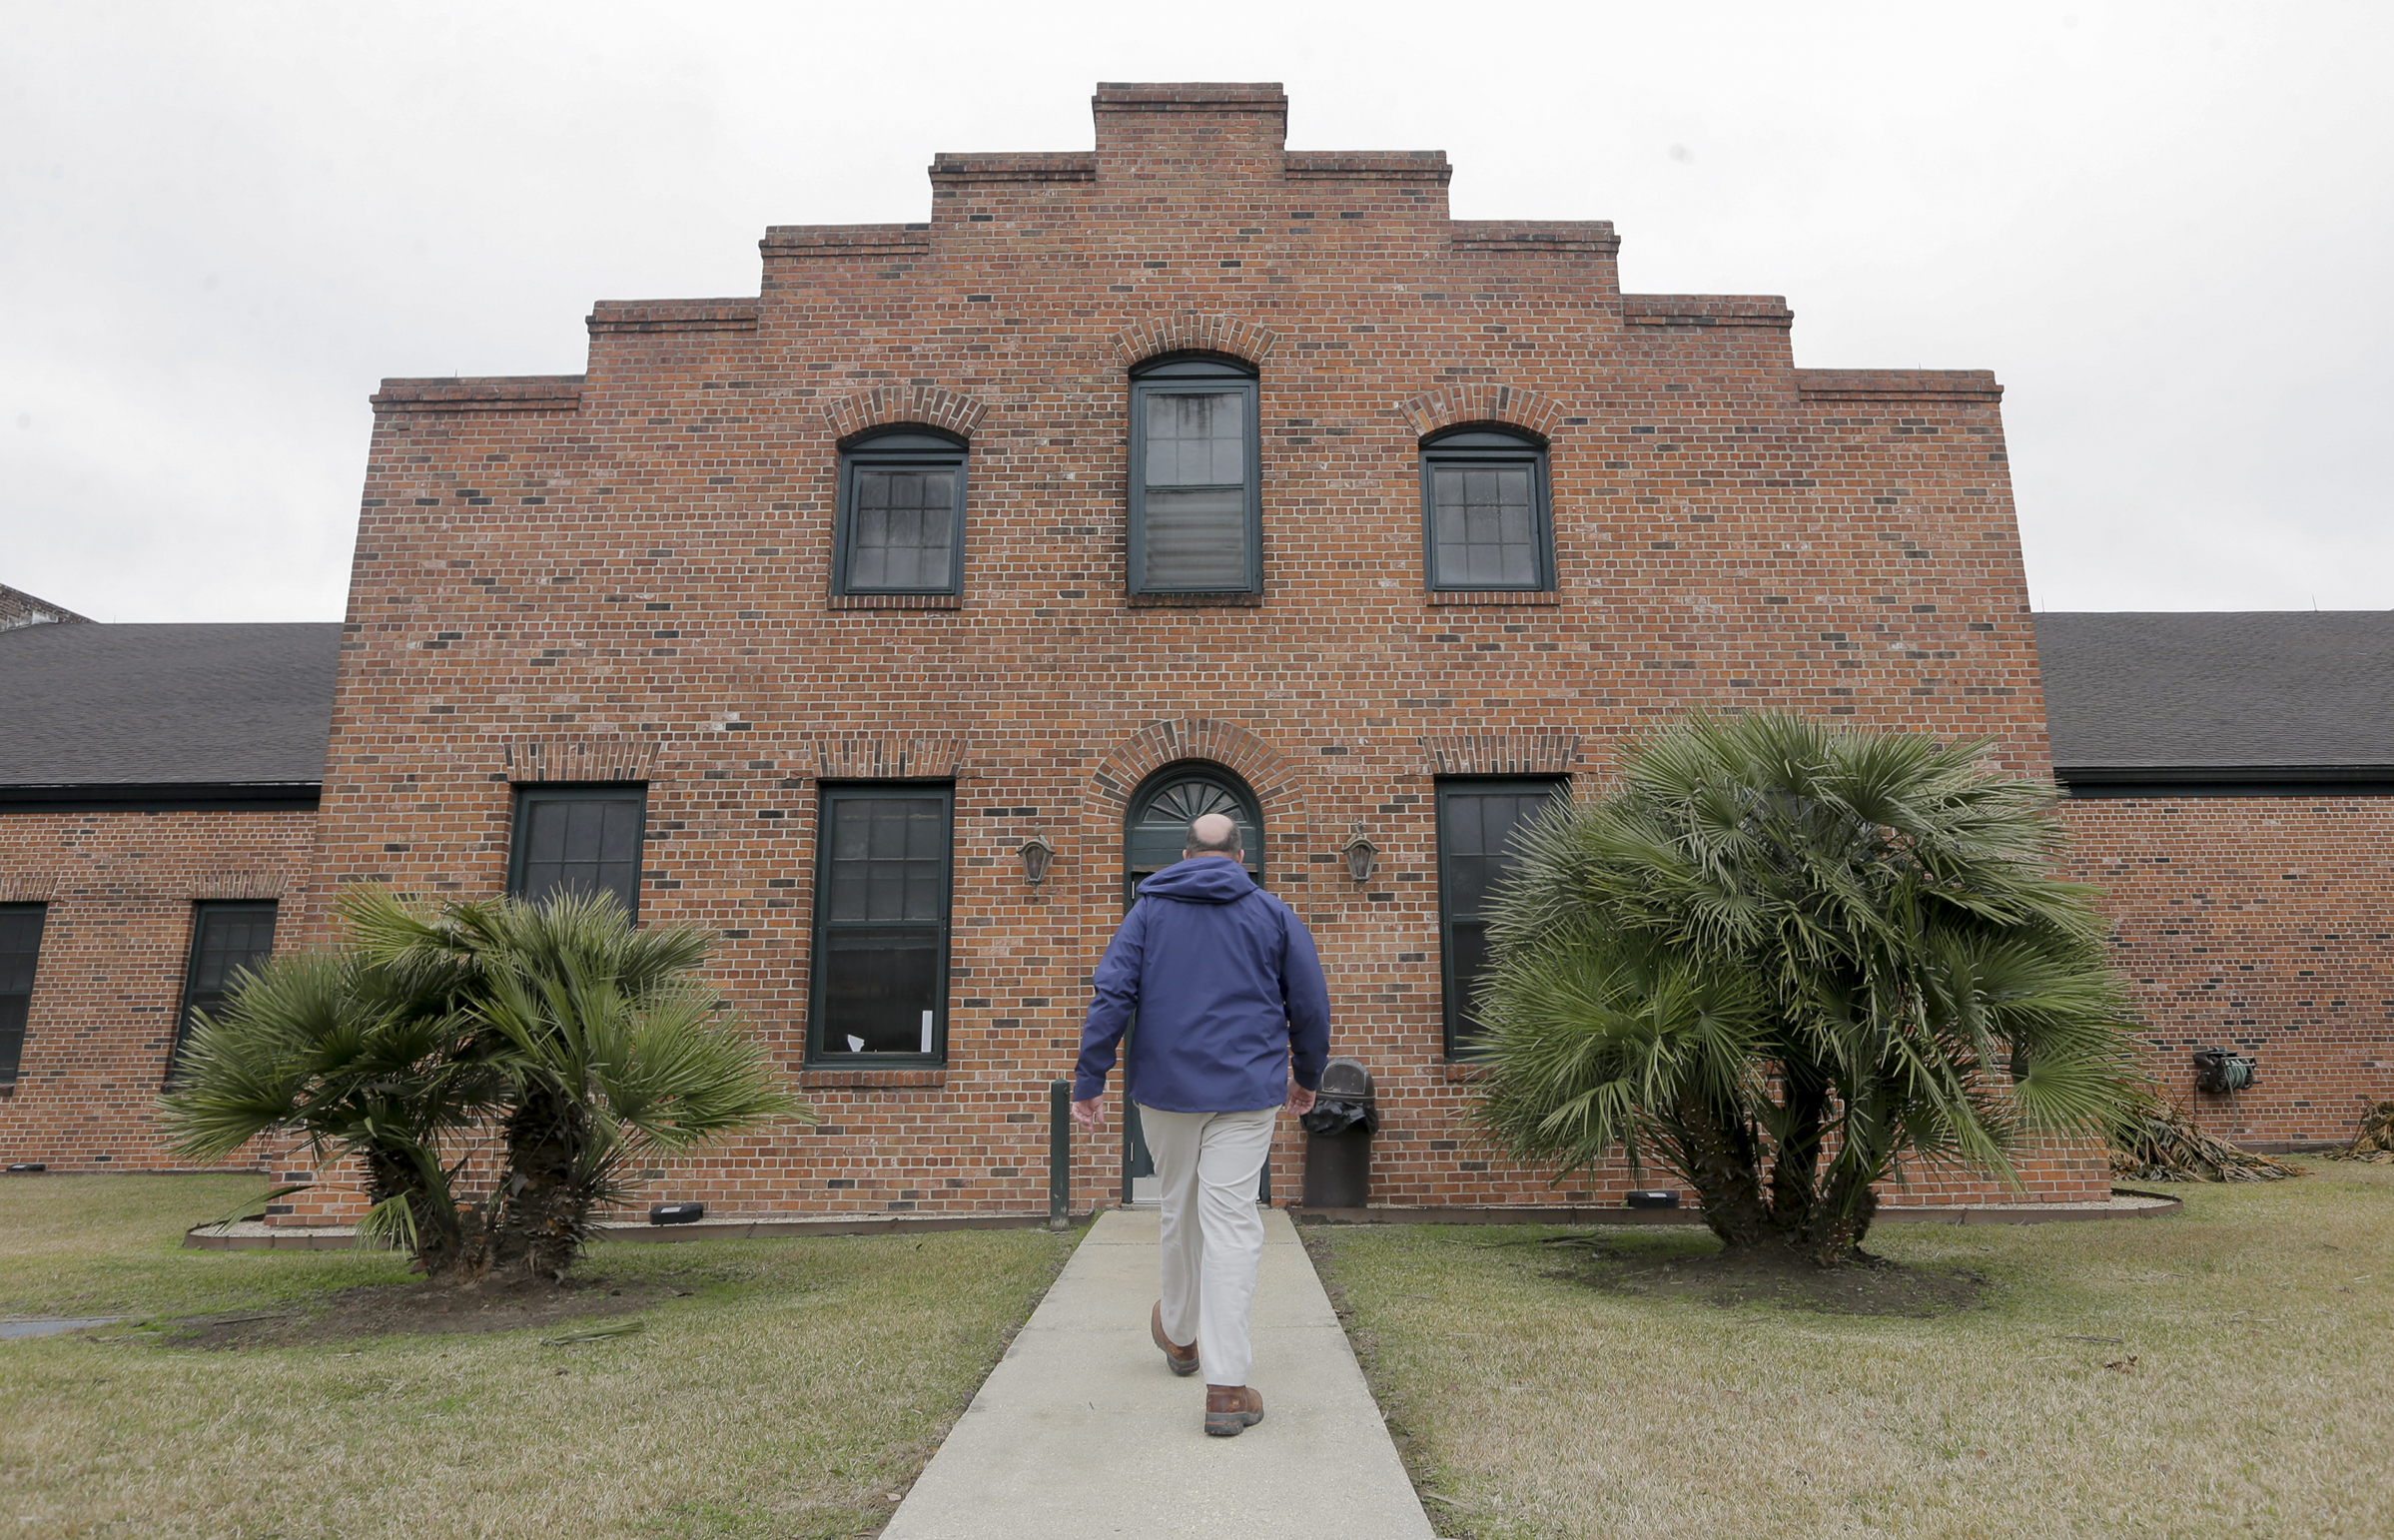 McIlhenny Co. executive Harold Osborn walks to the Tabasco plant on Avery Island on Jan. 9. Louisiana's Avery Island, a salt dome and the birthplace of Tabasco sauce, is newly listed on the National Register of Historic Places.